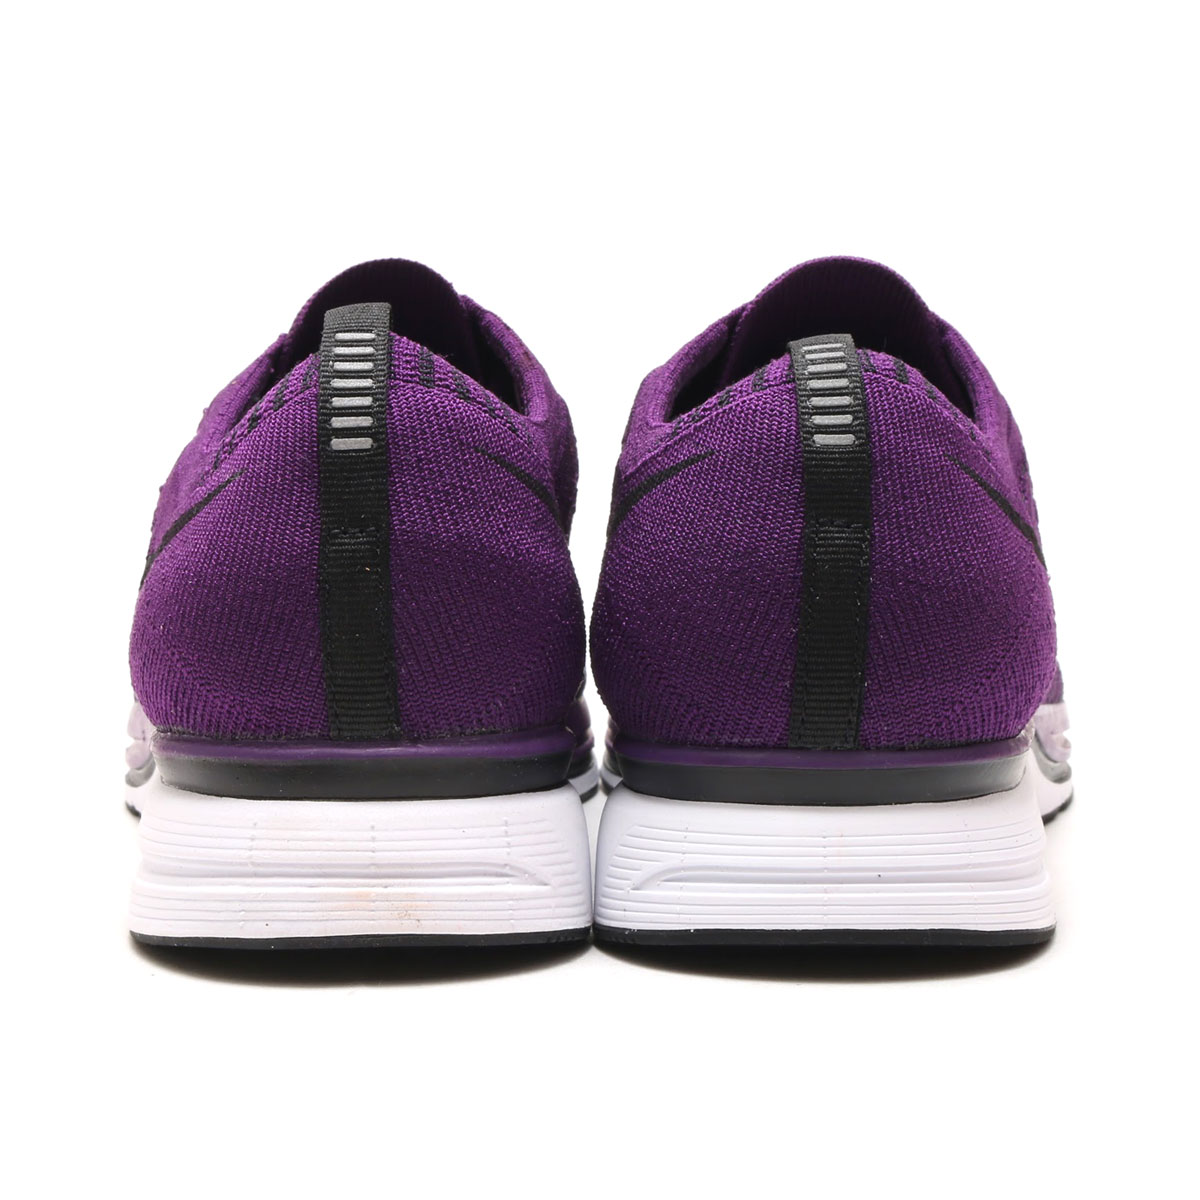 1e3af533601eb9 NIKE FLYKNIT TRAINER (Nike fried food knit trainer) (NIGHT PURPLE BLACK WHITE)  17HO-S